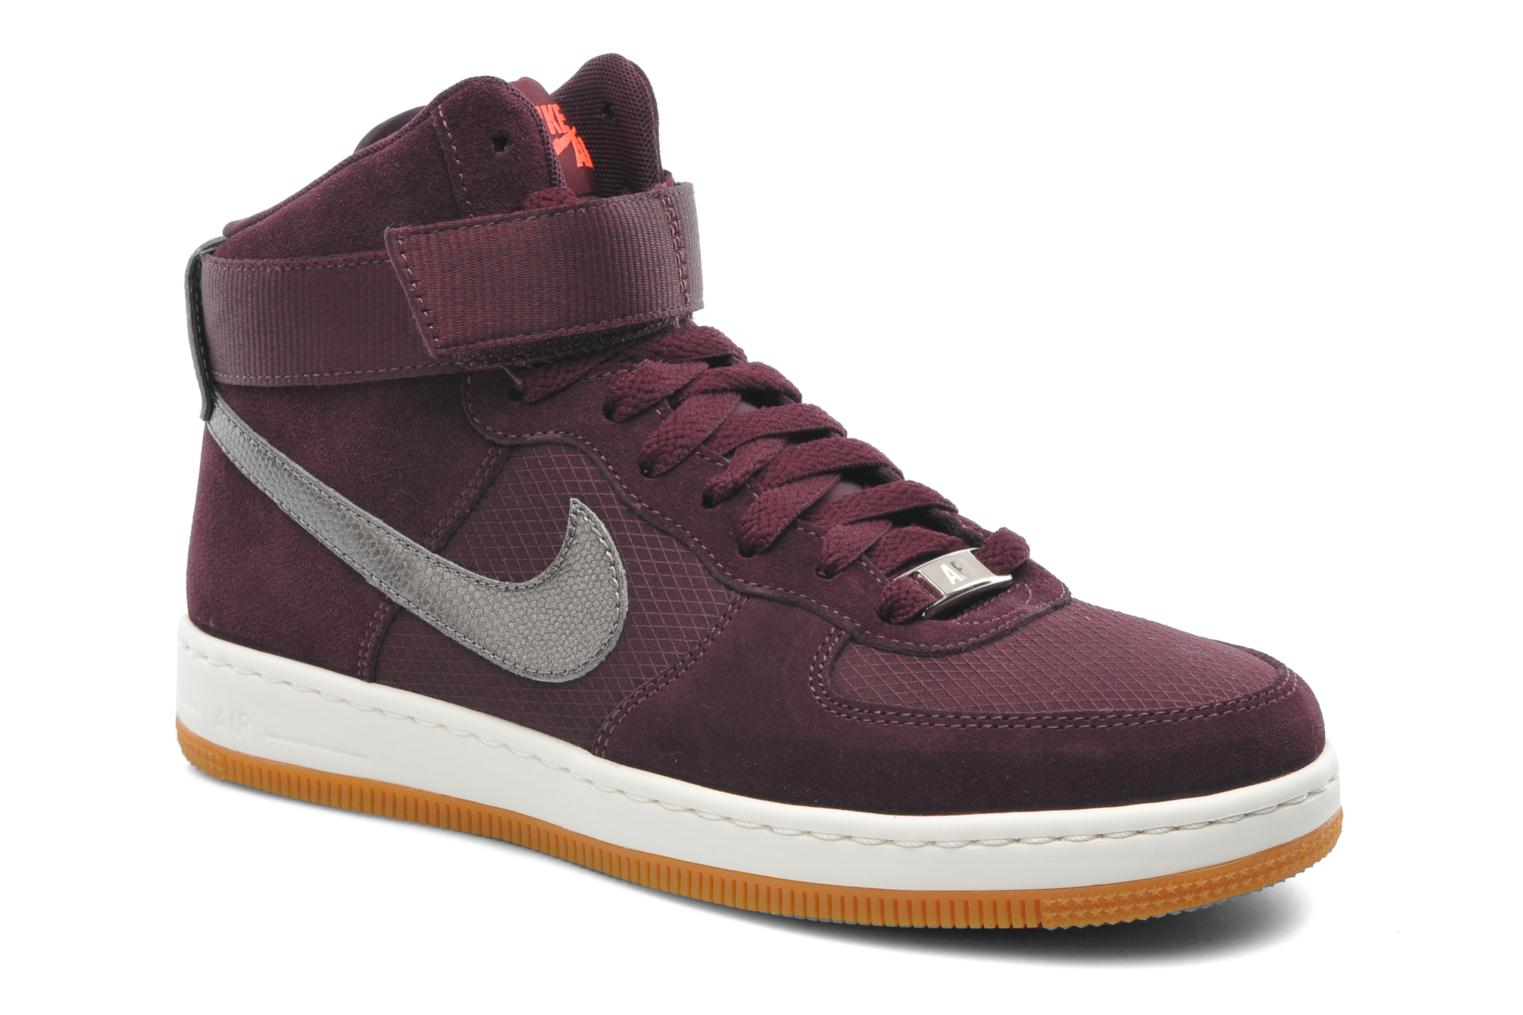 nike w nike air force 1 ultra force mid trainers in burgundy at 207447. Black Bedroom Furniture Sets. Home Design Ideas